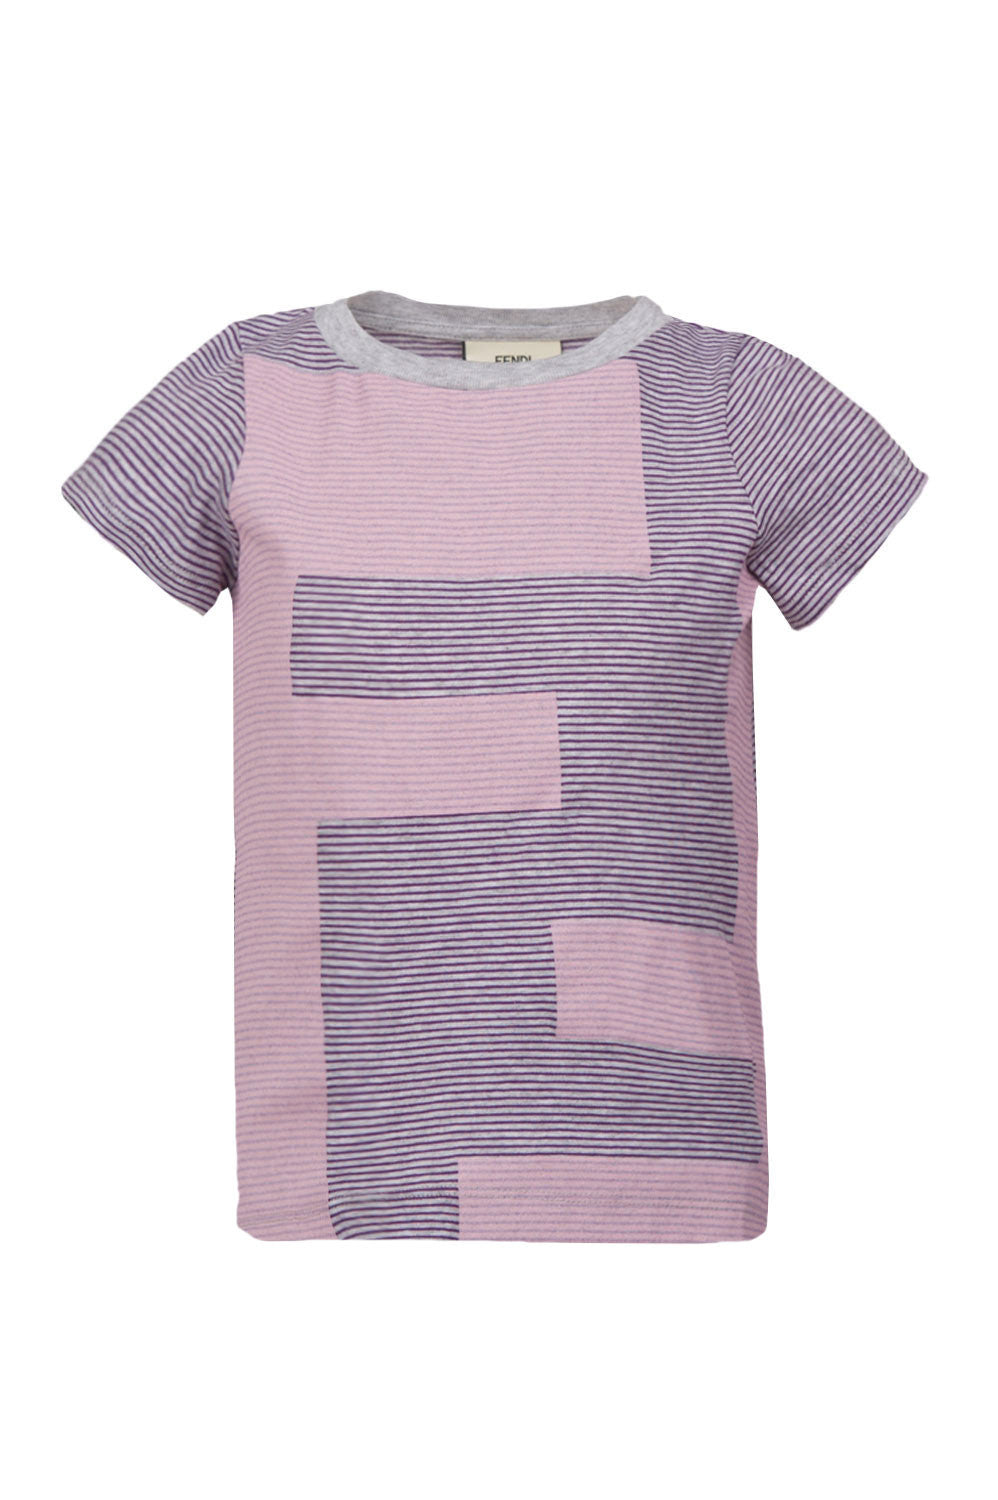 Girls FF Pink Striped Tee